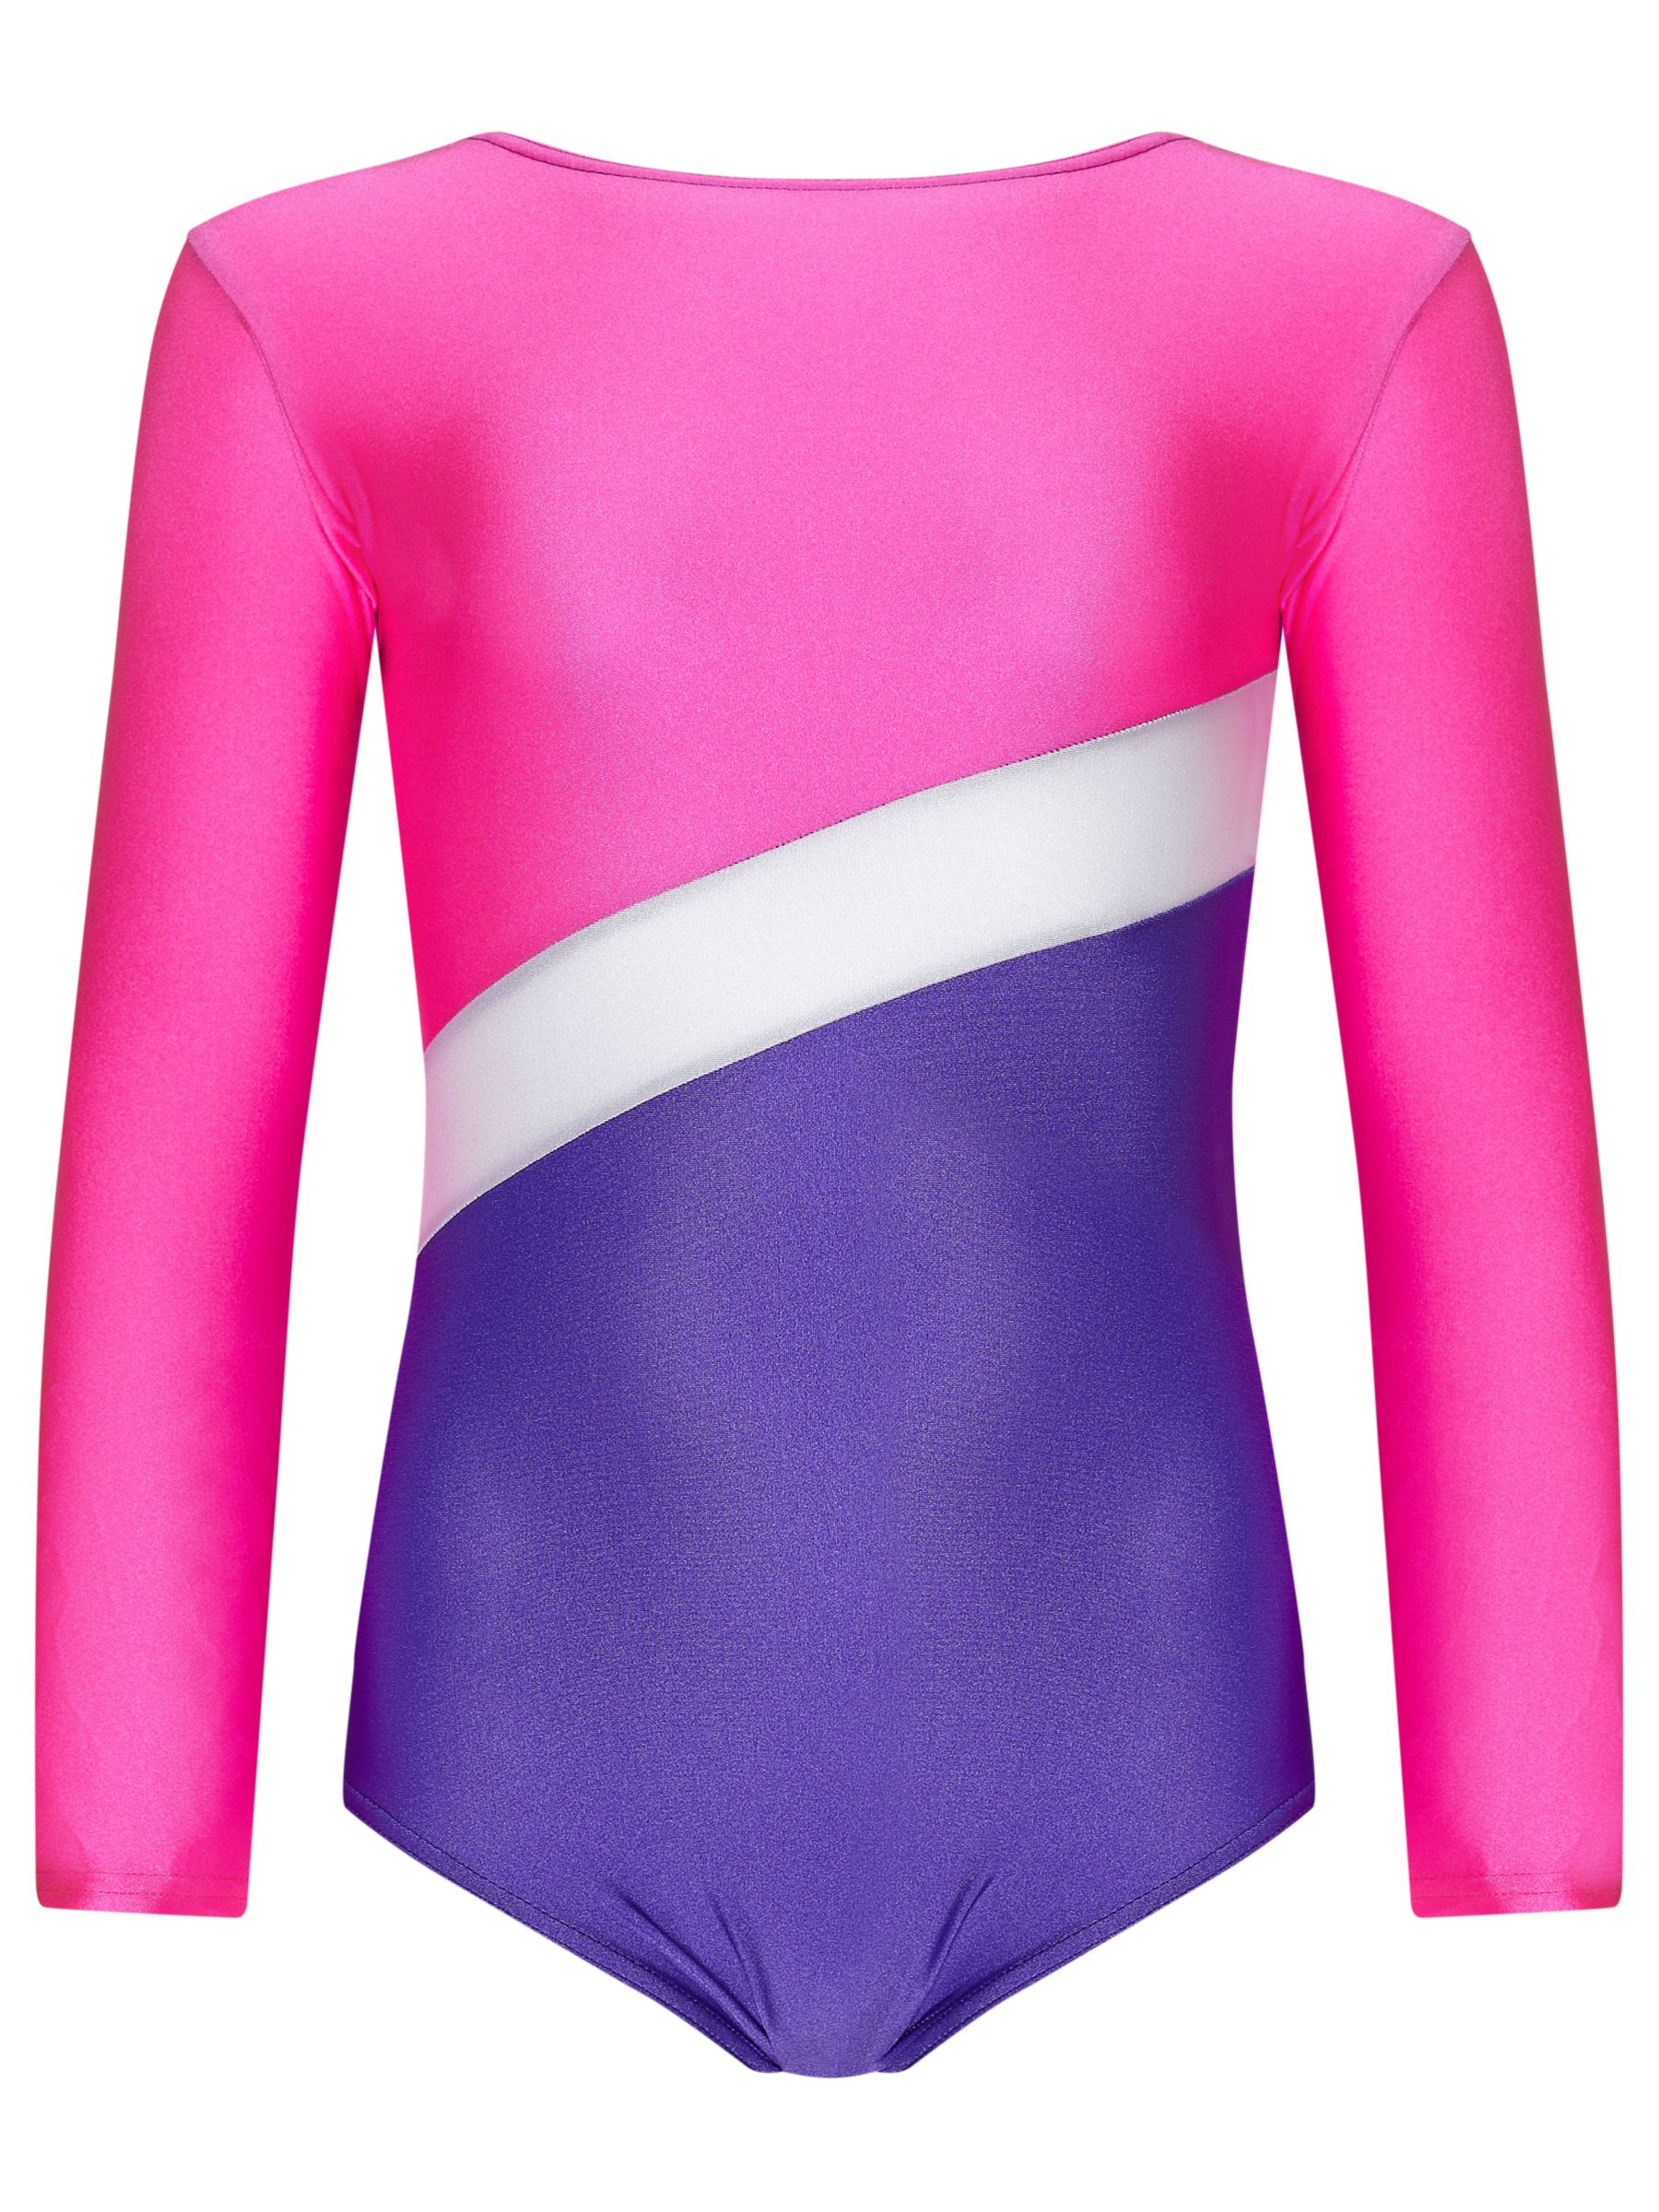 Tappers and Pointers Tappers and Pointers Shine Panel Gym Leotard, Pink/Purple